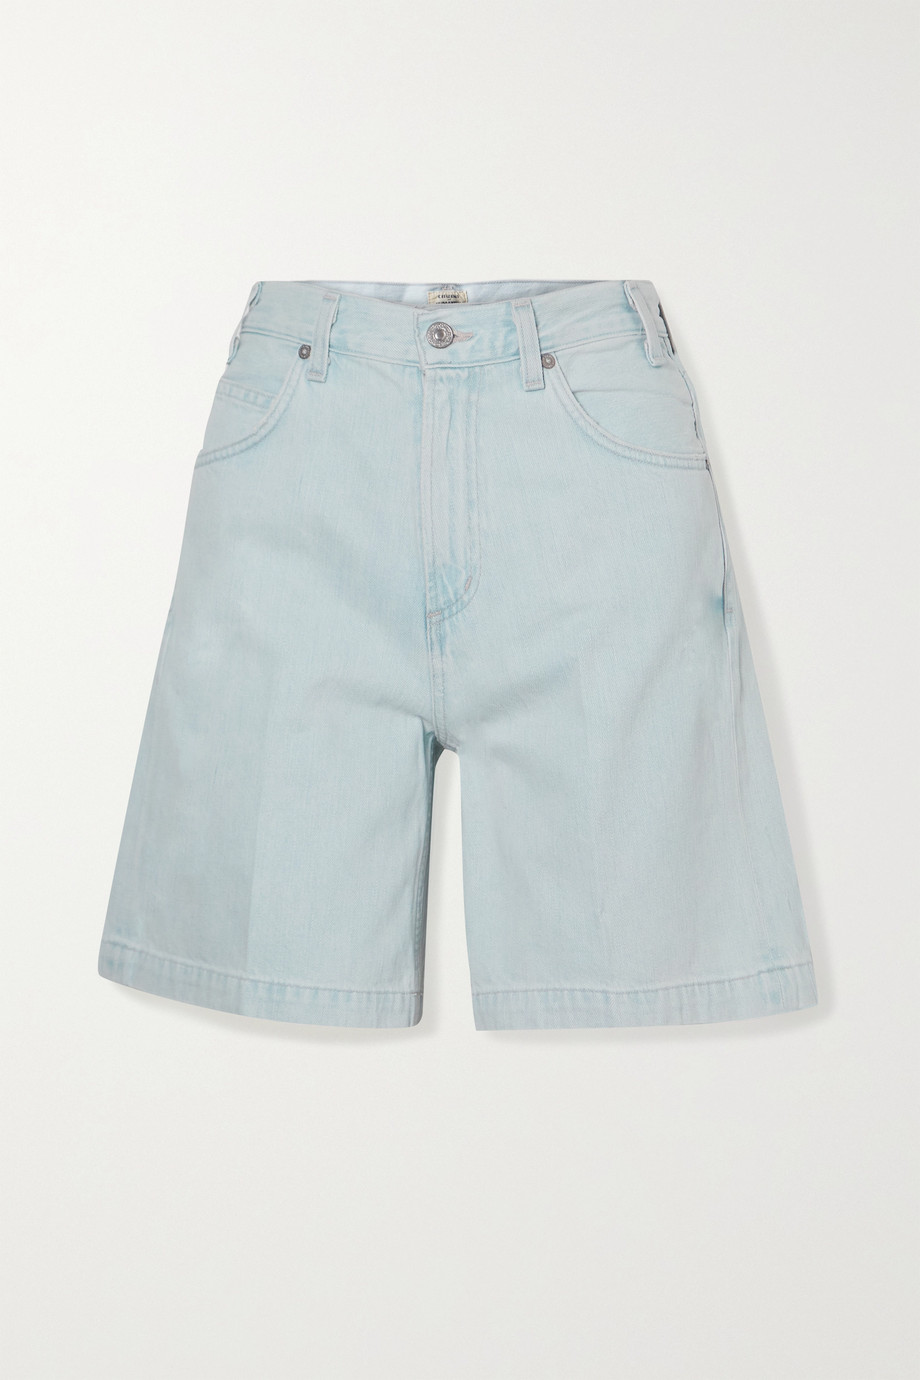 Citizens of Humanity Rosa denim shorts